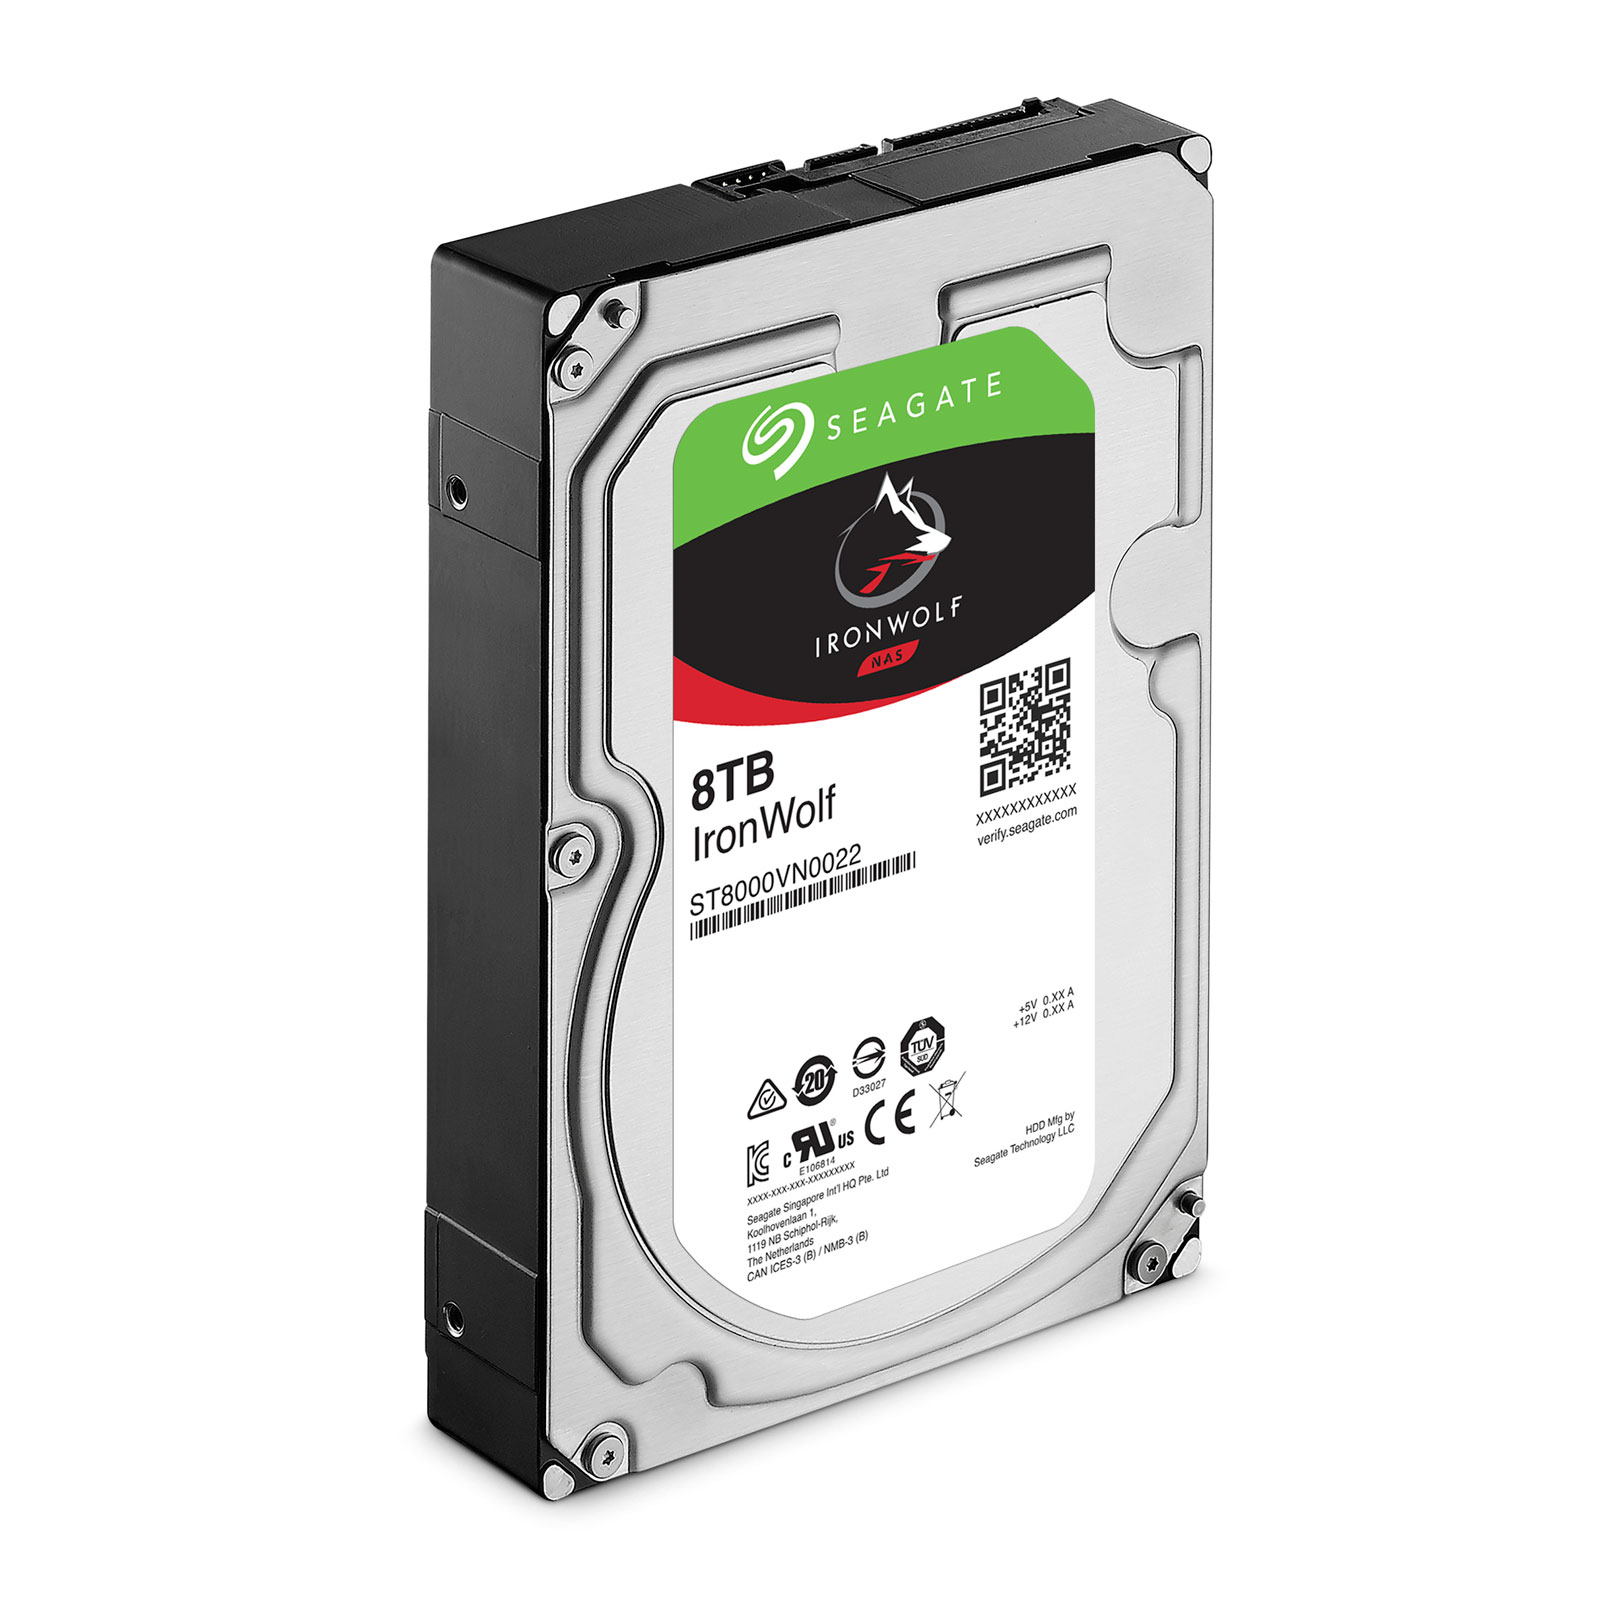 Disque dur Seagate IronWolf 8 To SATA 3 (SATA 6Gb/s) 256 Mo 7200 trs/mn (bulk), informatique ile de la Réunion 974